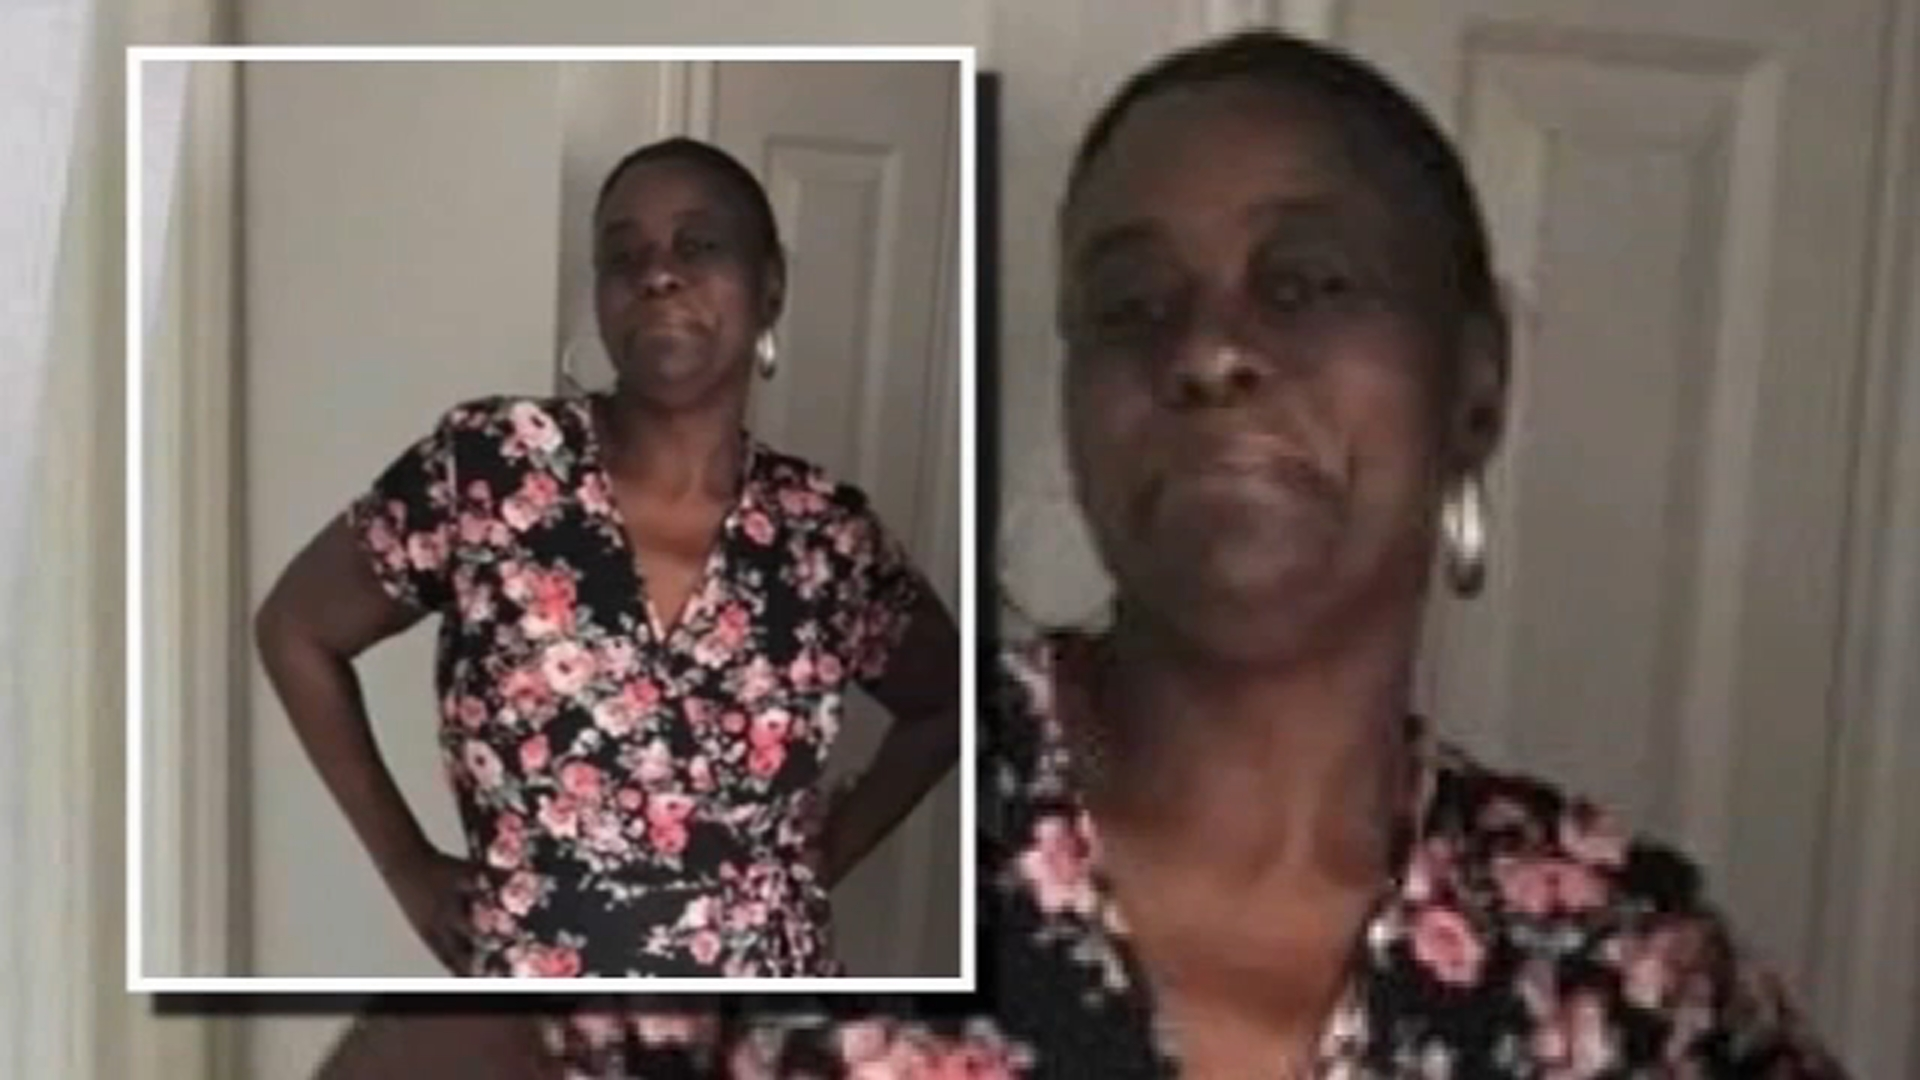 news.yahoo.com: Family of woman killed by Baytown officer files federal lawsuit